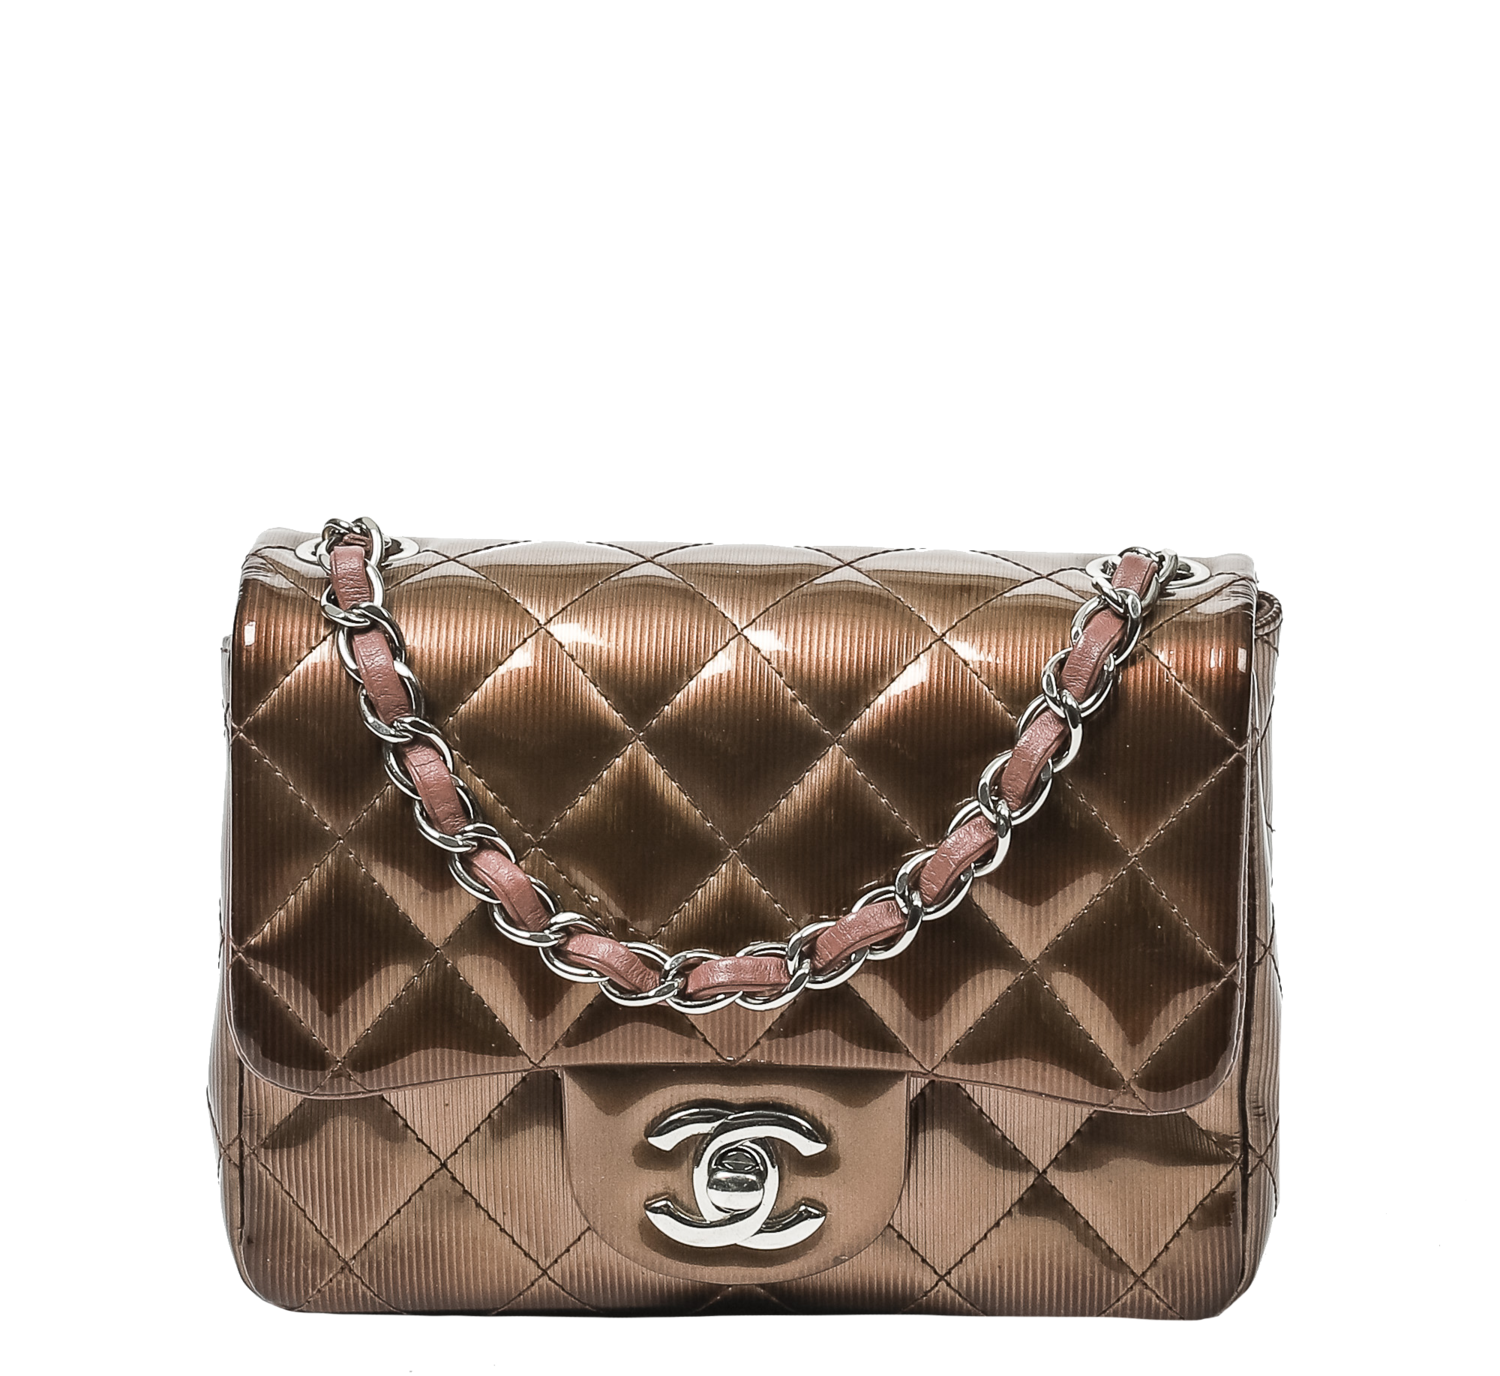 Chanel Limited Edition Pink Rose Fonce Striated Patent Mini Square Flap Bag